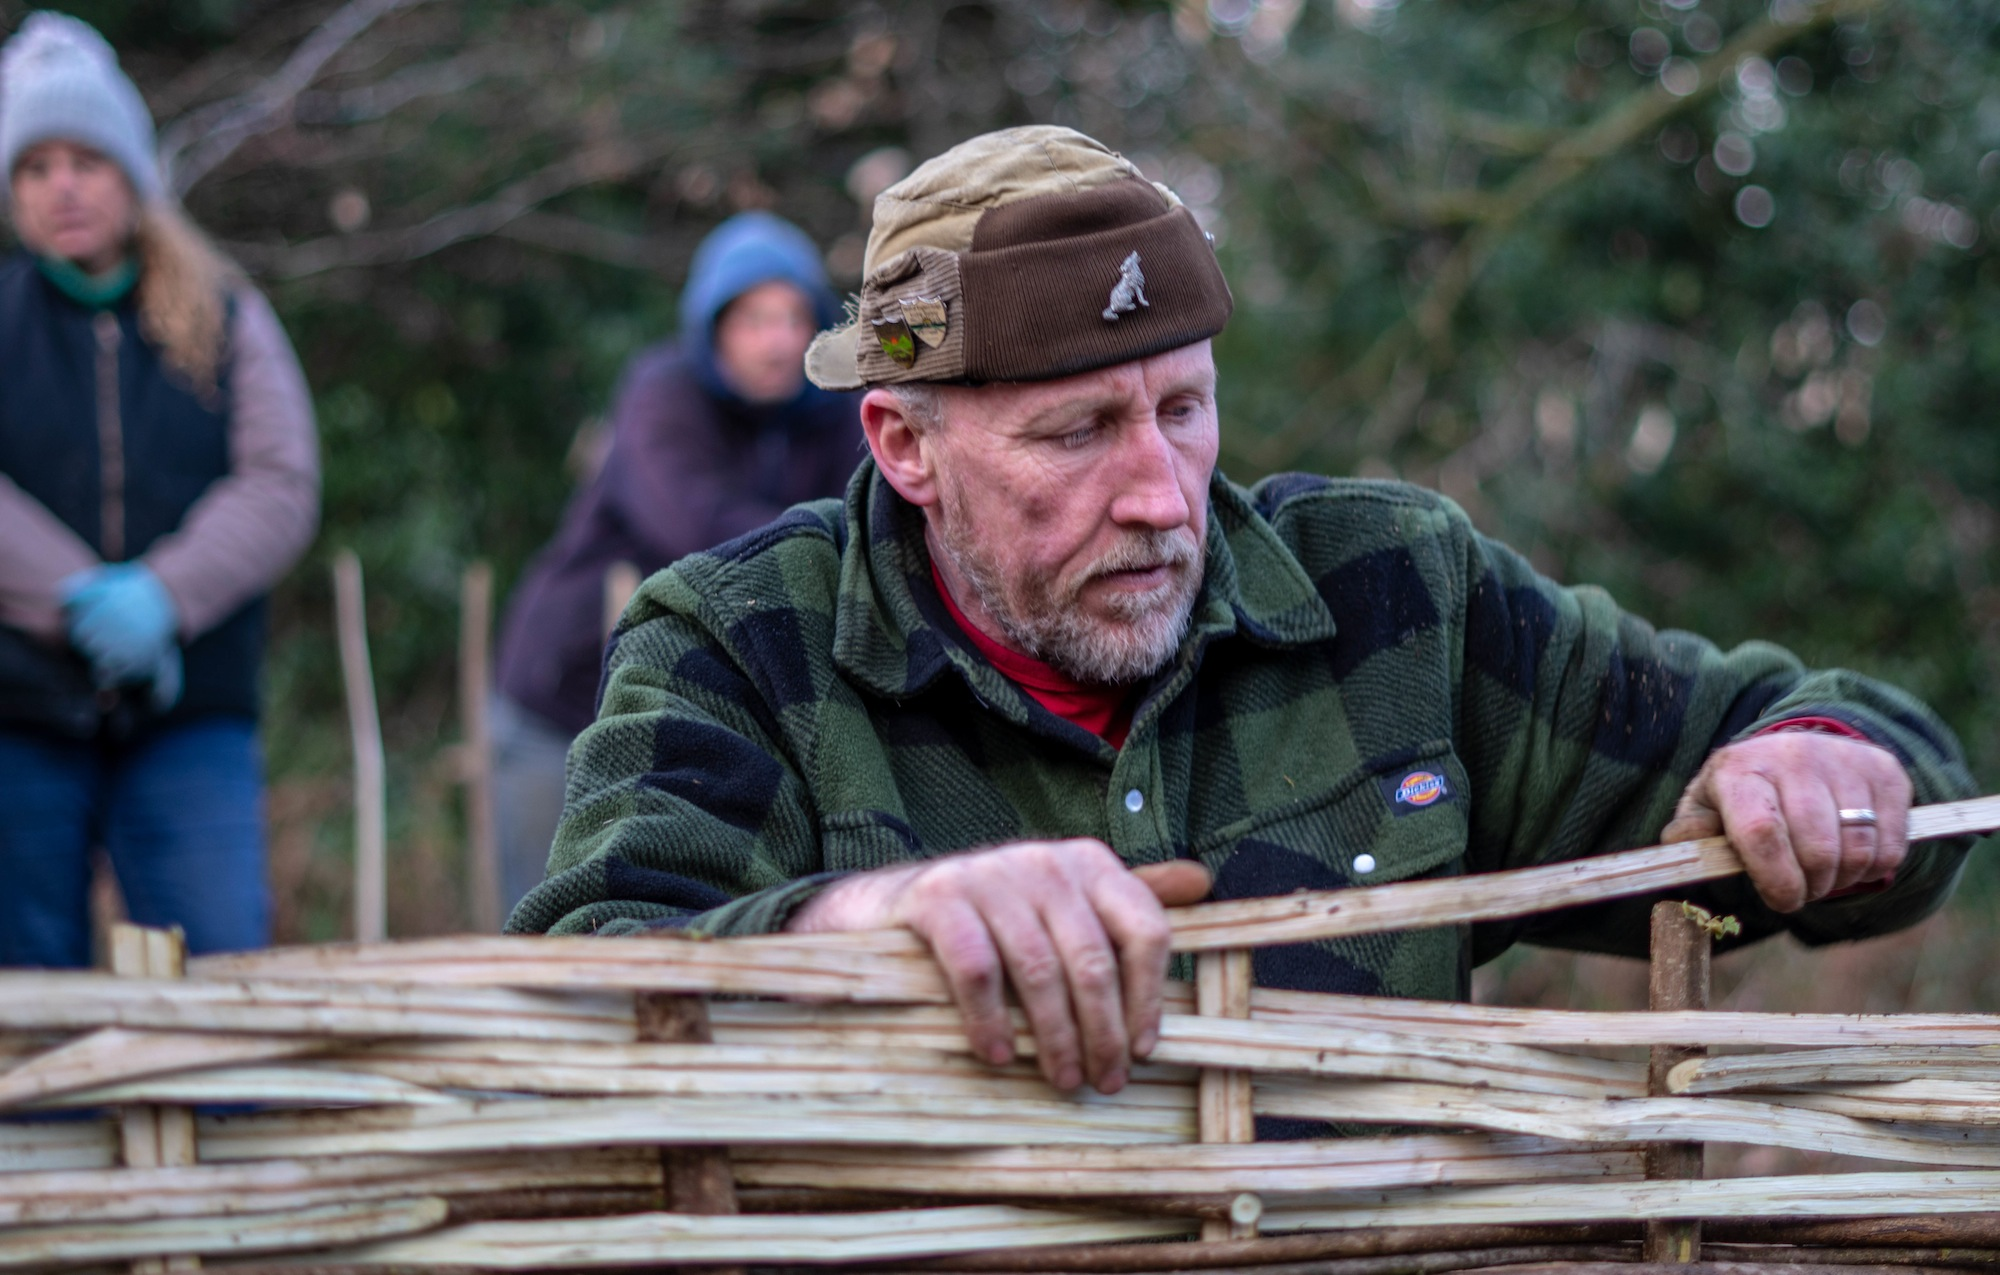 Wattle Hurdle Making by Paul Matthews